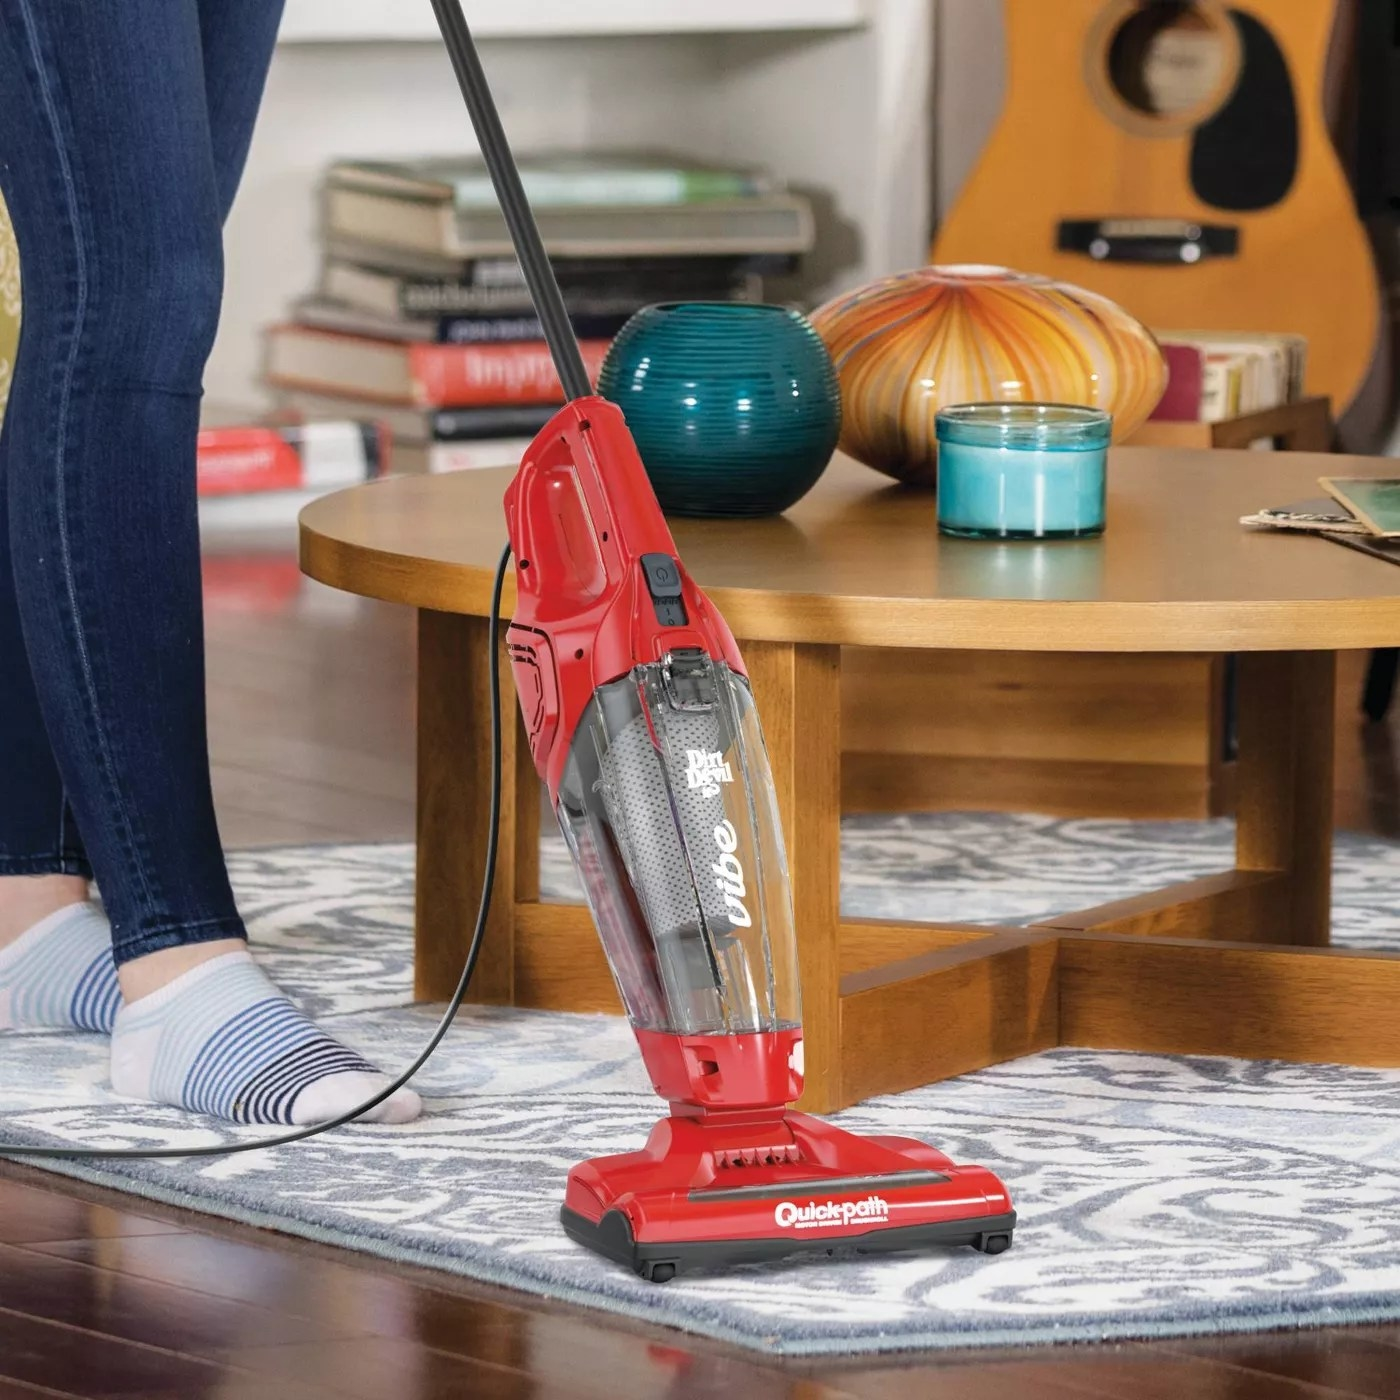 The red vacuum with a handheld vacuum